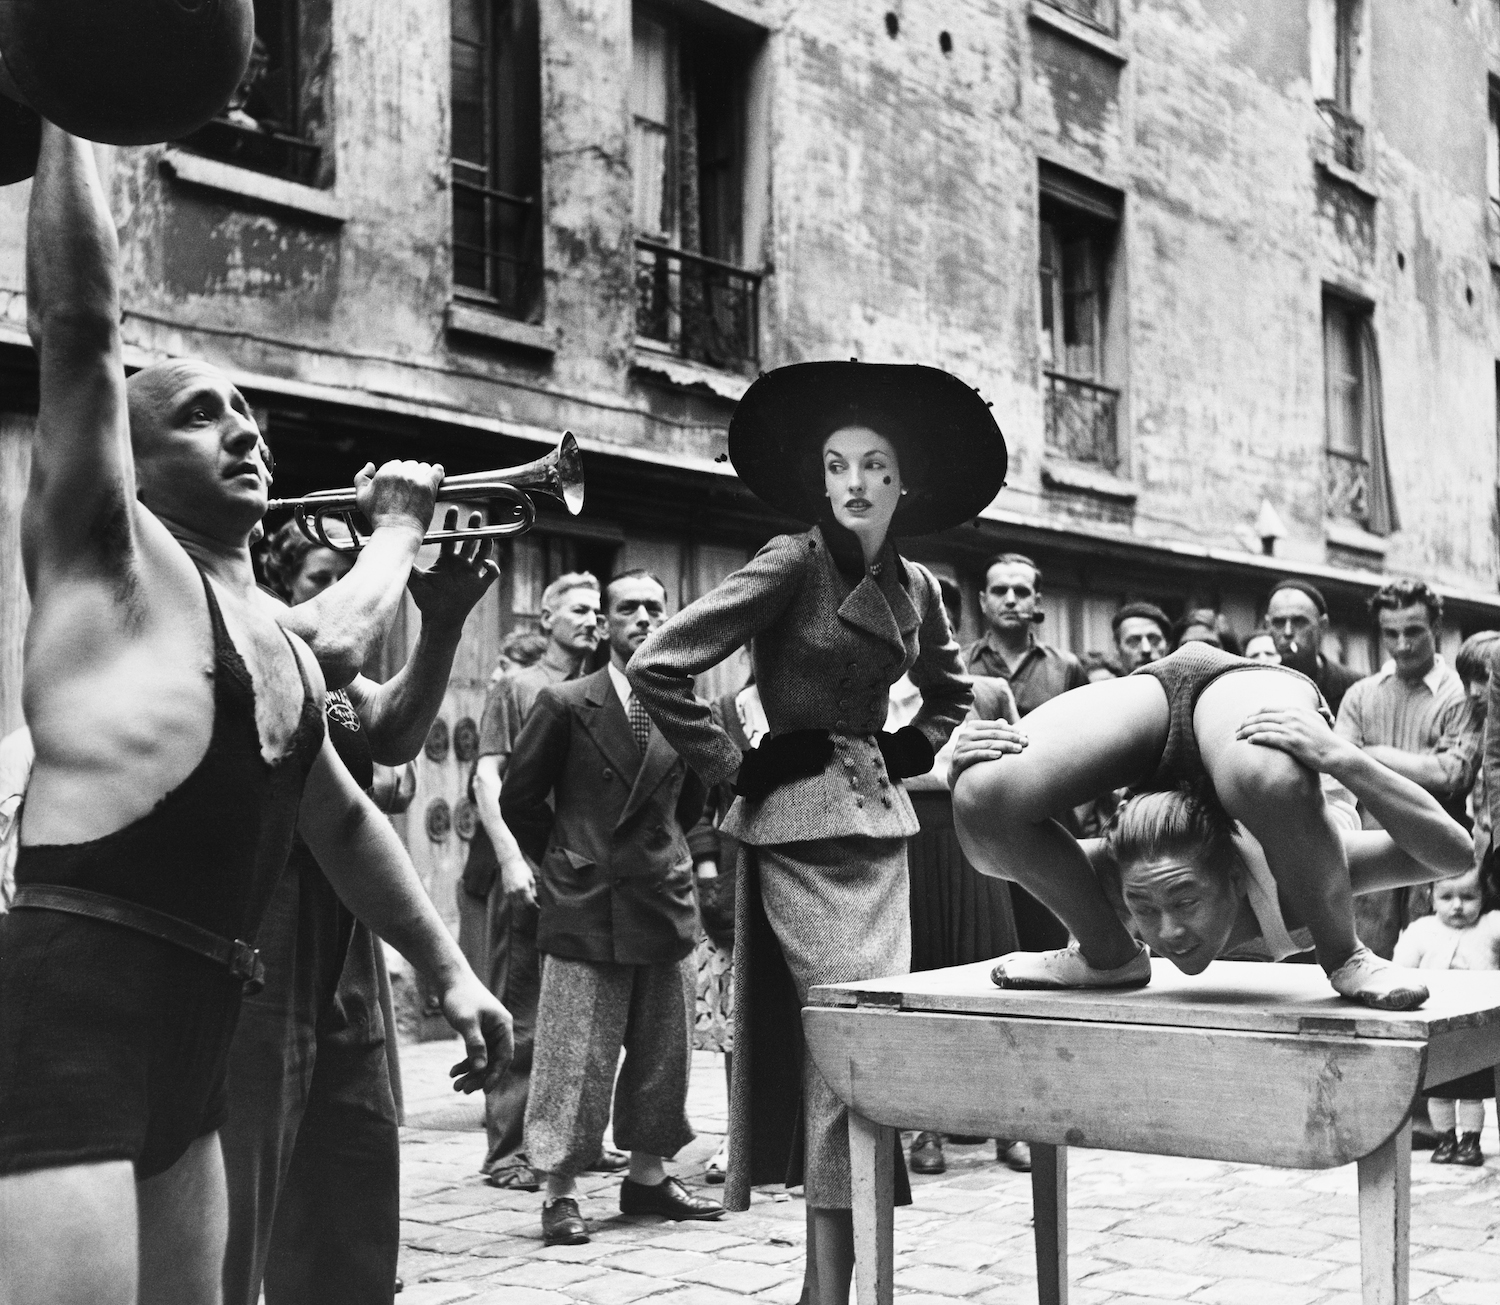 Richard Avedon (1923 – 2004) | Elise Daniels with street performers, suit by Balenciaga, Le Marais, Paris, 1948 | © The Richard Avedon Foundation | Balenciaga: Shaping Fashion at V&A; 27 May 2017 – 18 Feb 2018; vam.ac.uk/balenciaga